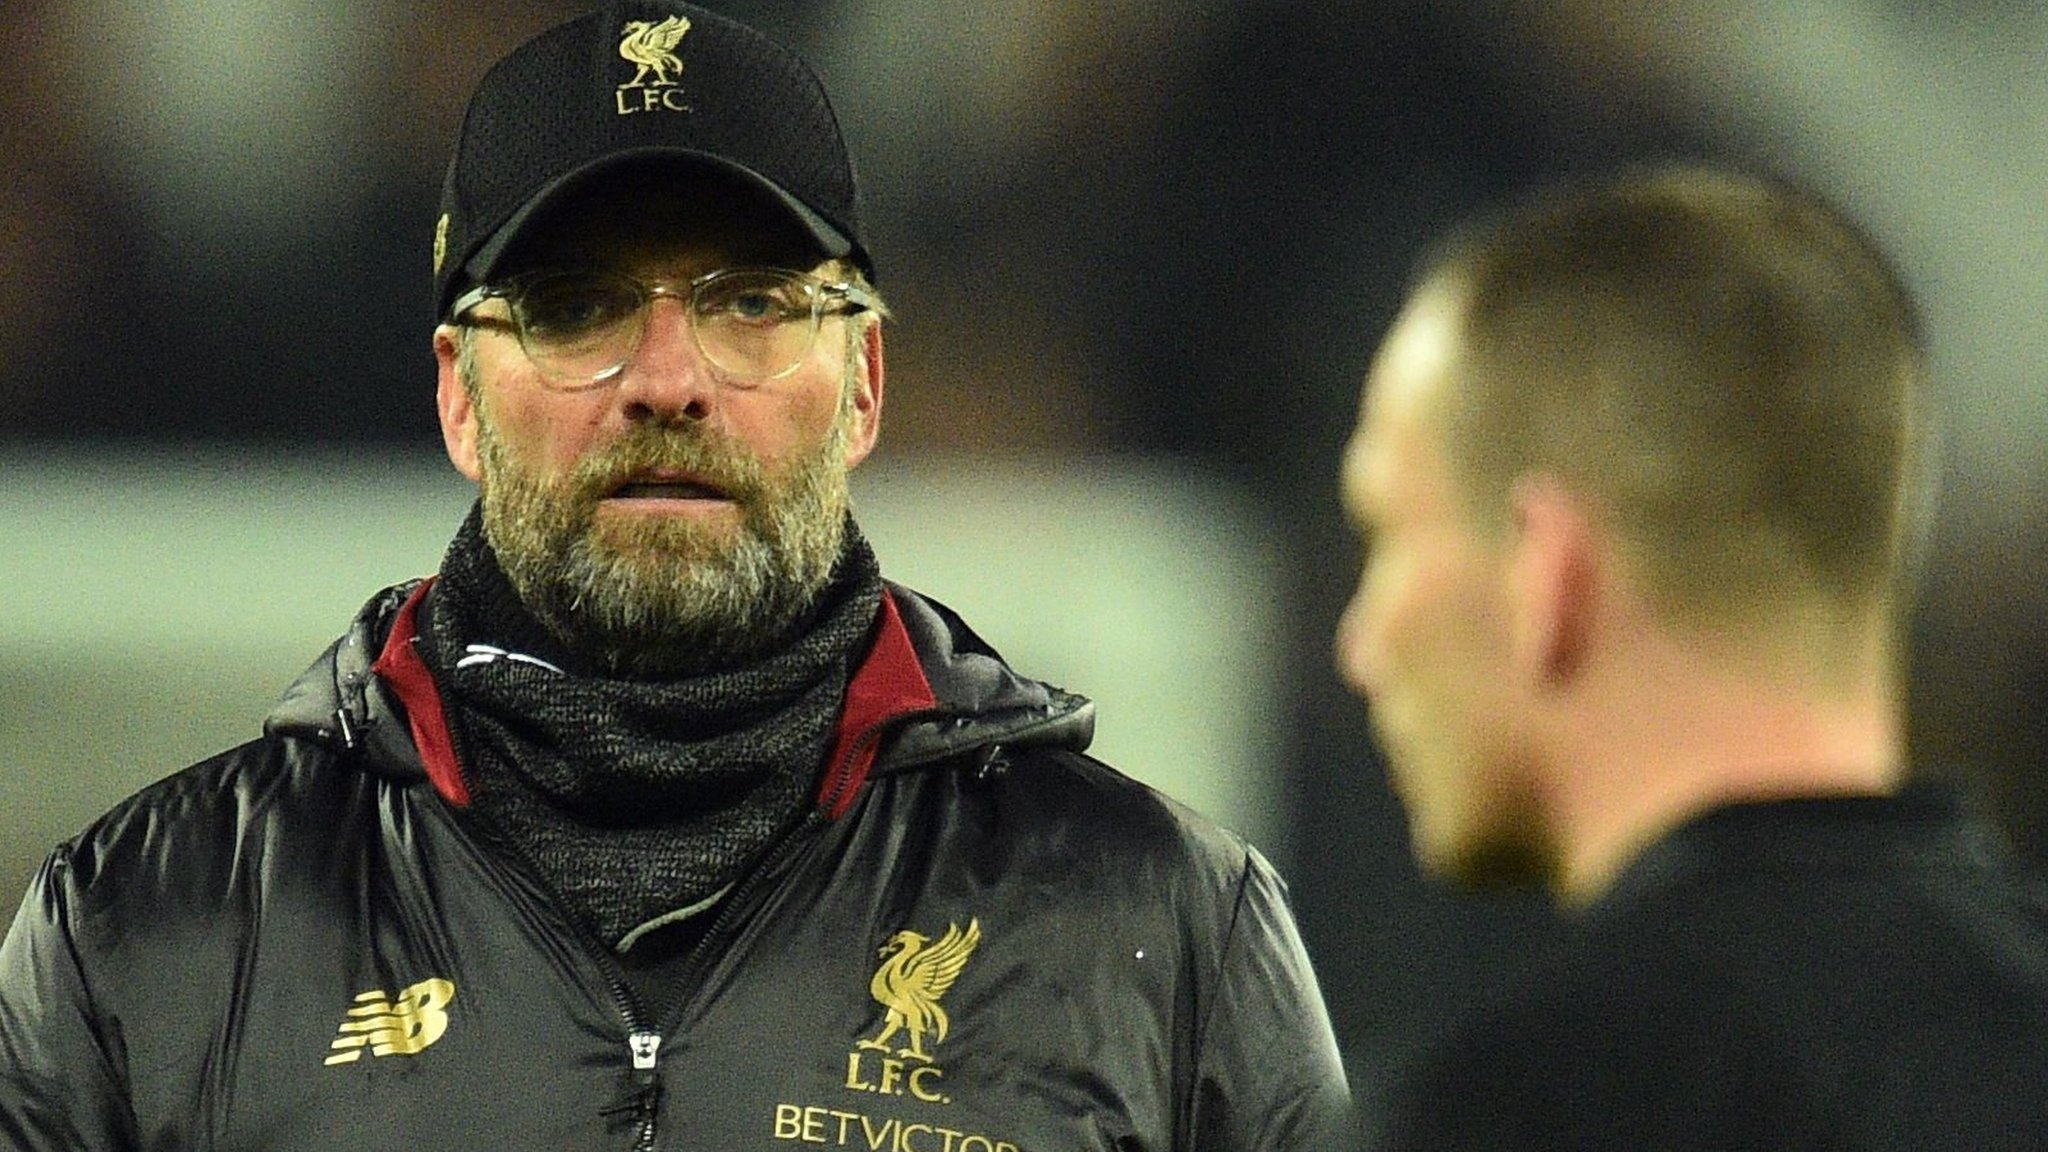 Jurgen Klopp: Liverpool manager fined £45,000 by FA for comments about referee